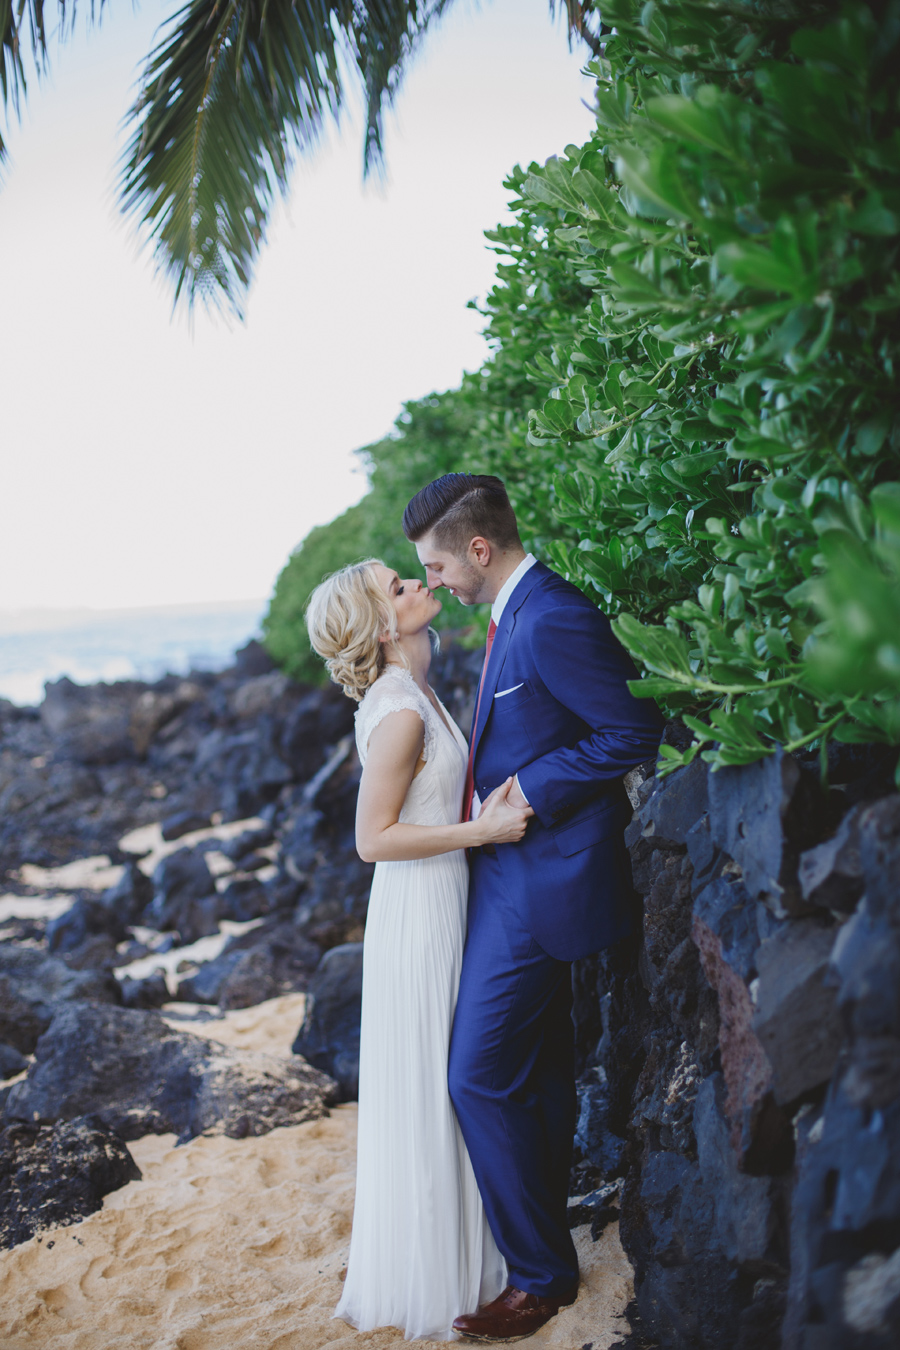 Kissing under a palm tree